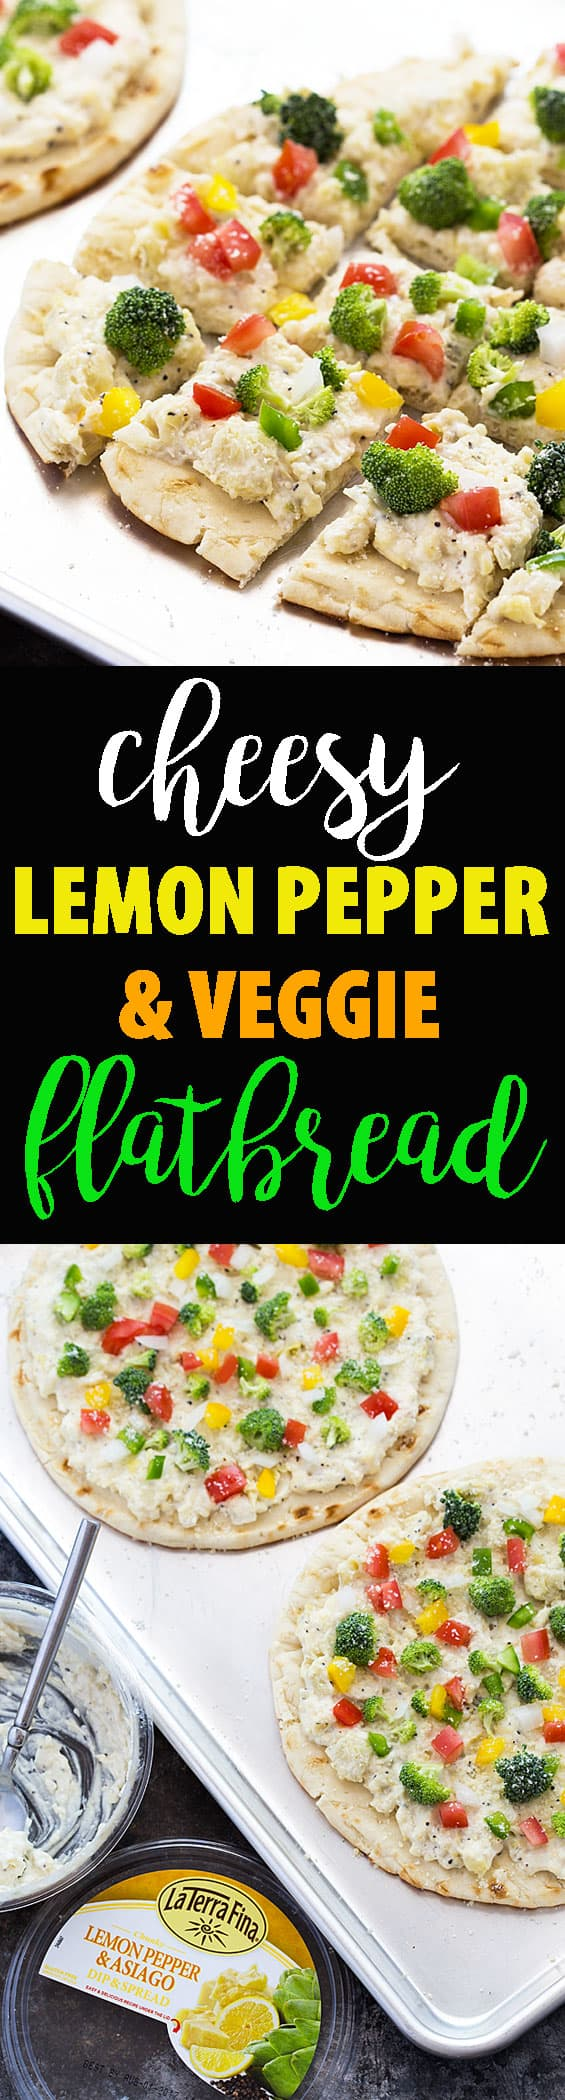 Cheesy Lemon Pepper Veggie Flatbread - An easy and delicious appetizer perfect for summer entertaining. Ready in under 10 minutes!